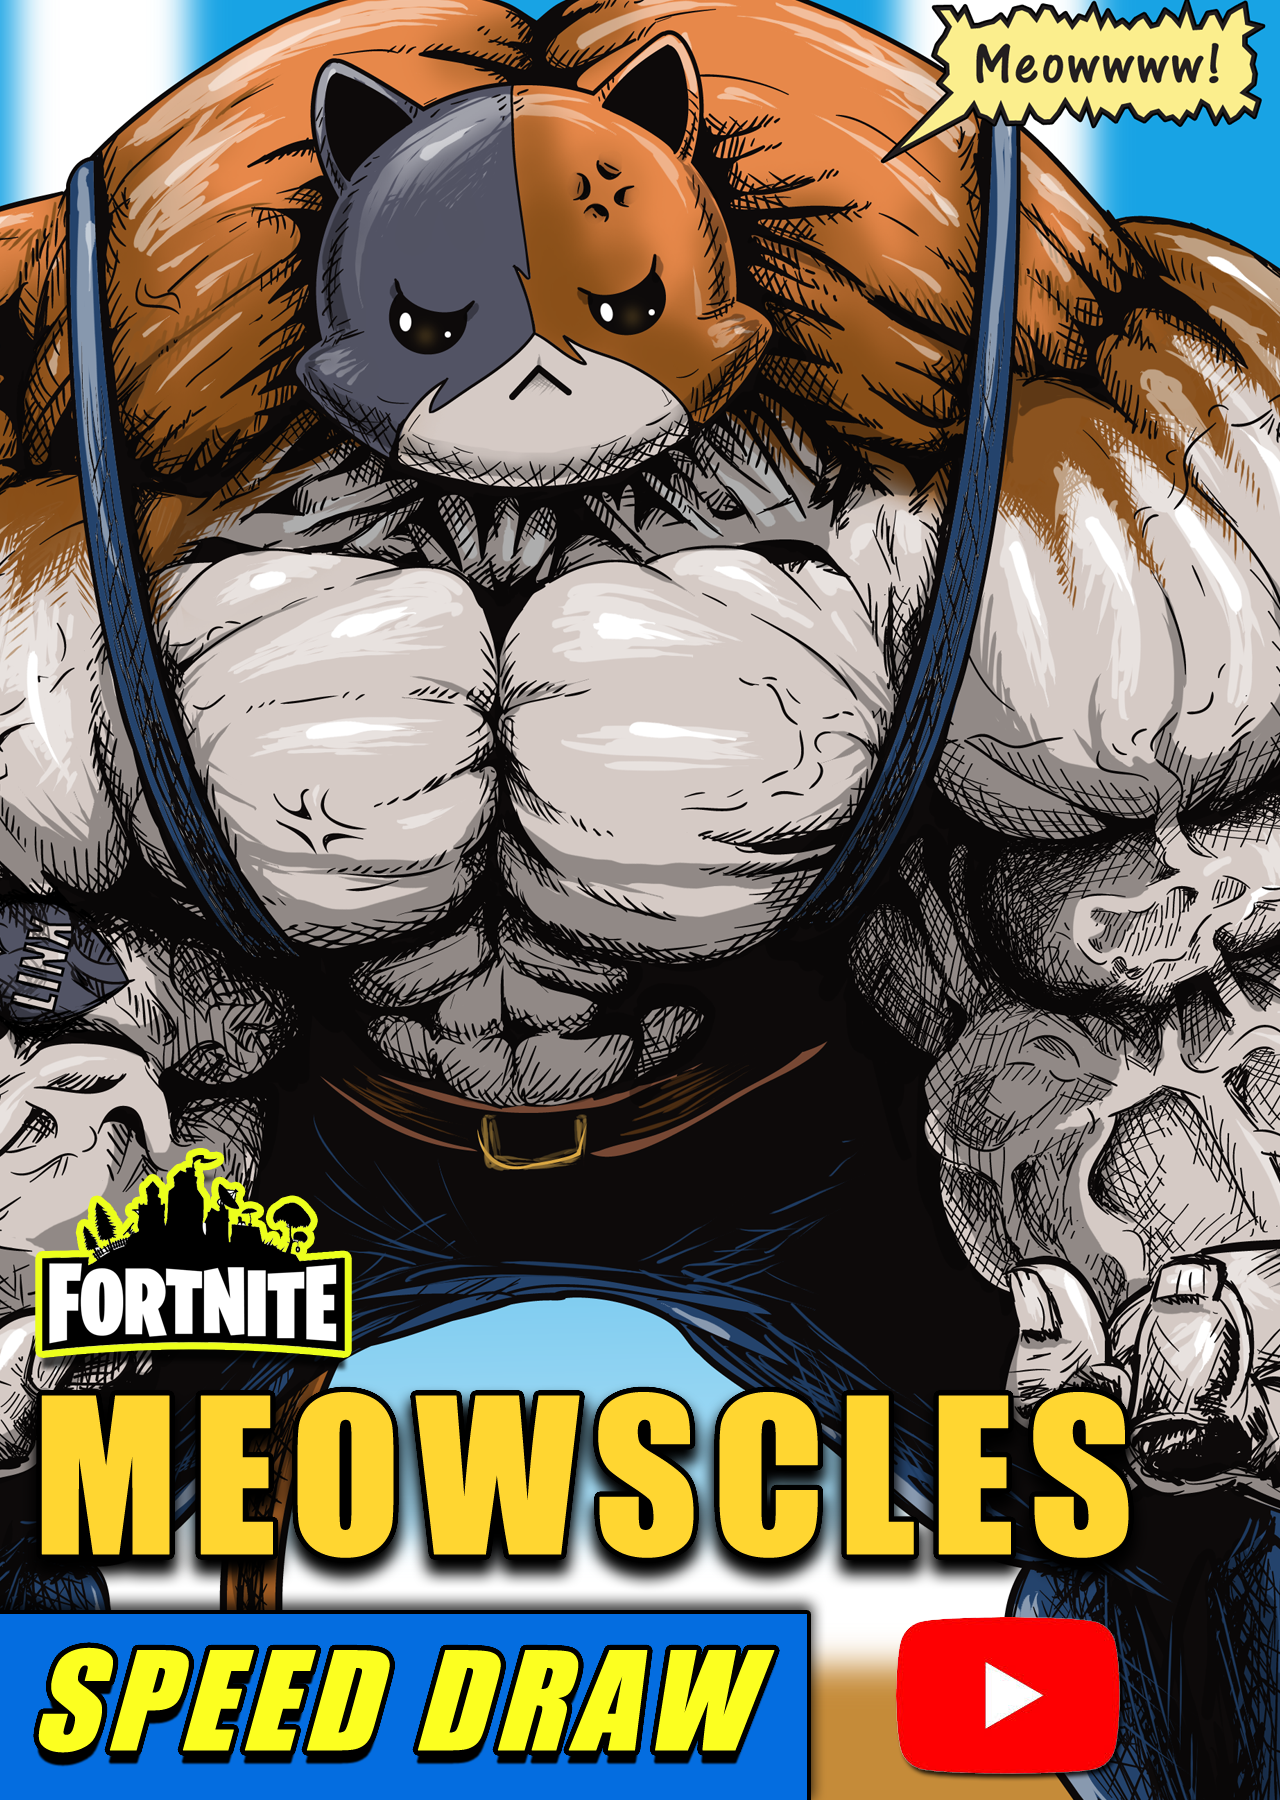 Fortnite Meowscles Speed Draw Speedpaint In 2020 Fortnite Im Poppy Draw